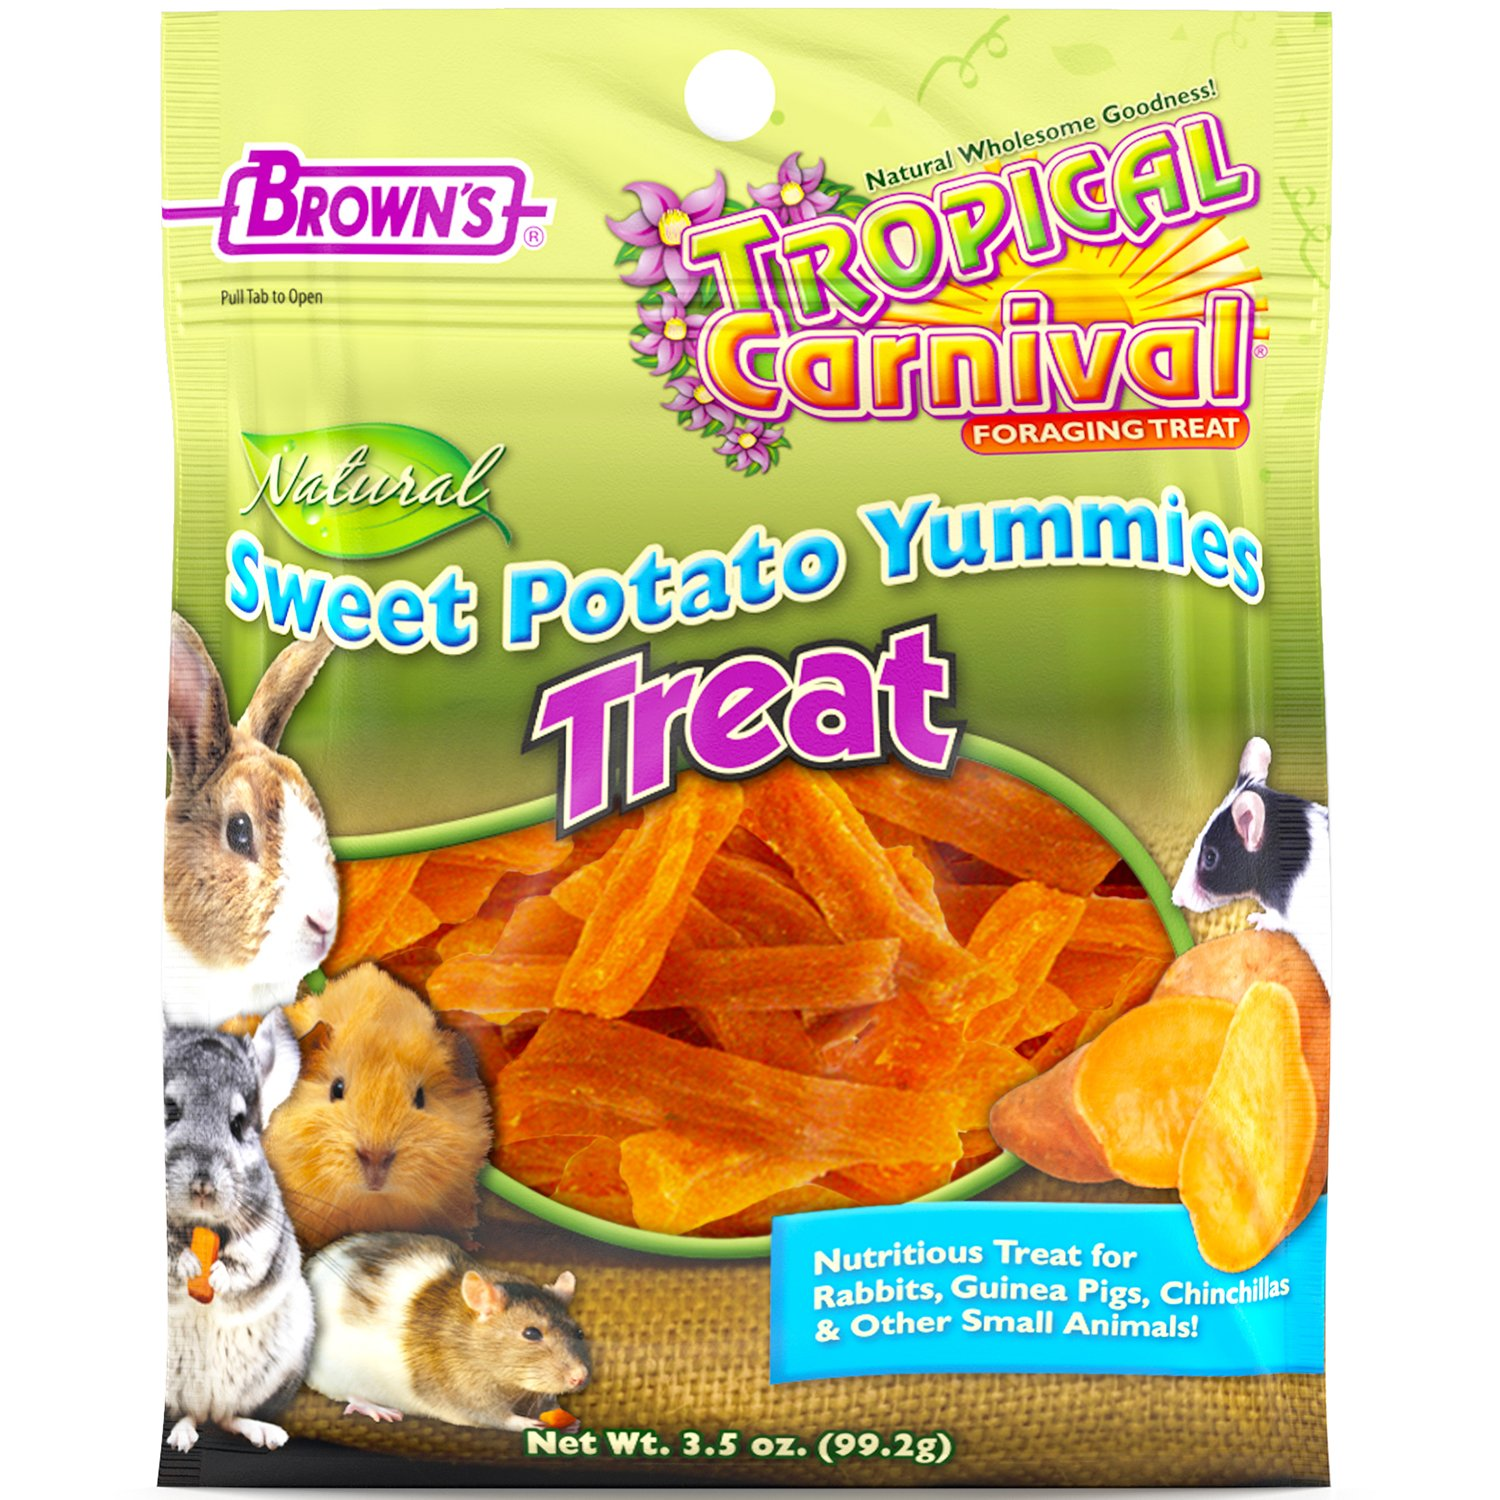 F.M. Brown's Tropical Carnival Natural Sweet Potato Yummies with Vitamin C, 3.5-oz Bag - Nutritious Treat for Rabbits, Guinea Pigs, Chinchillas and Other Small Animals